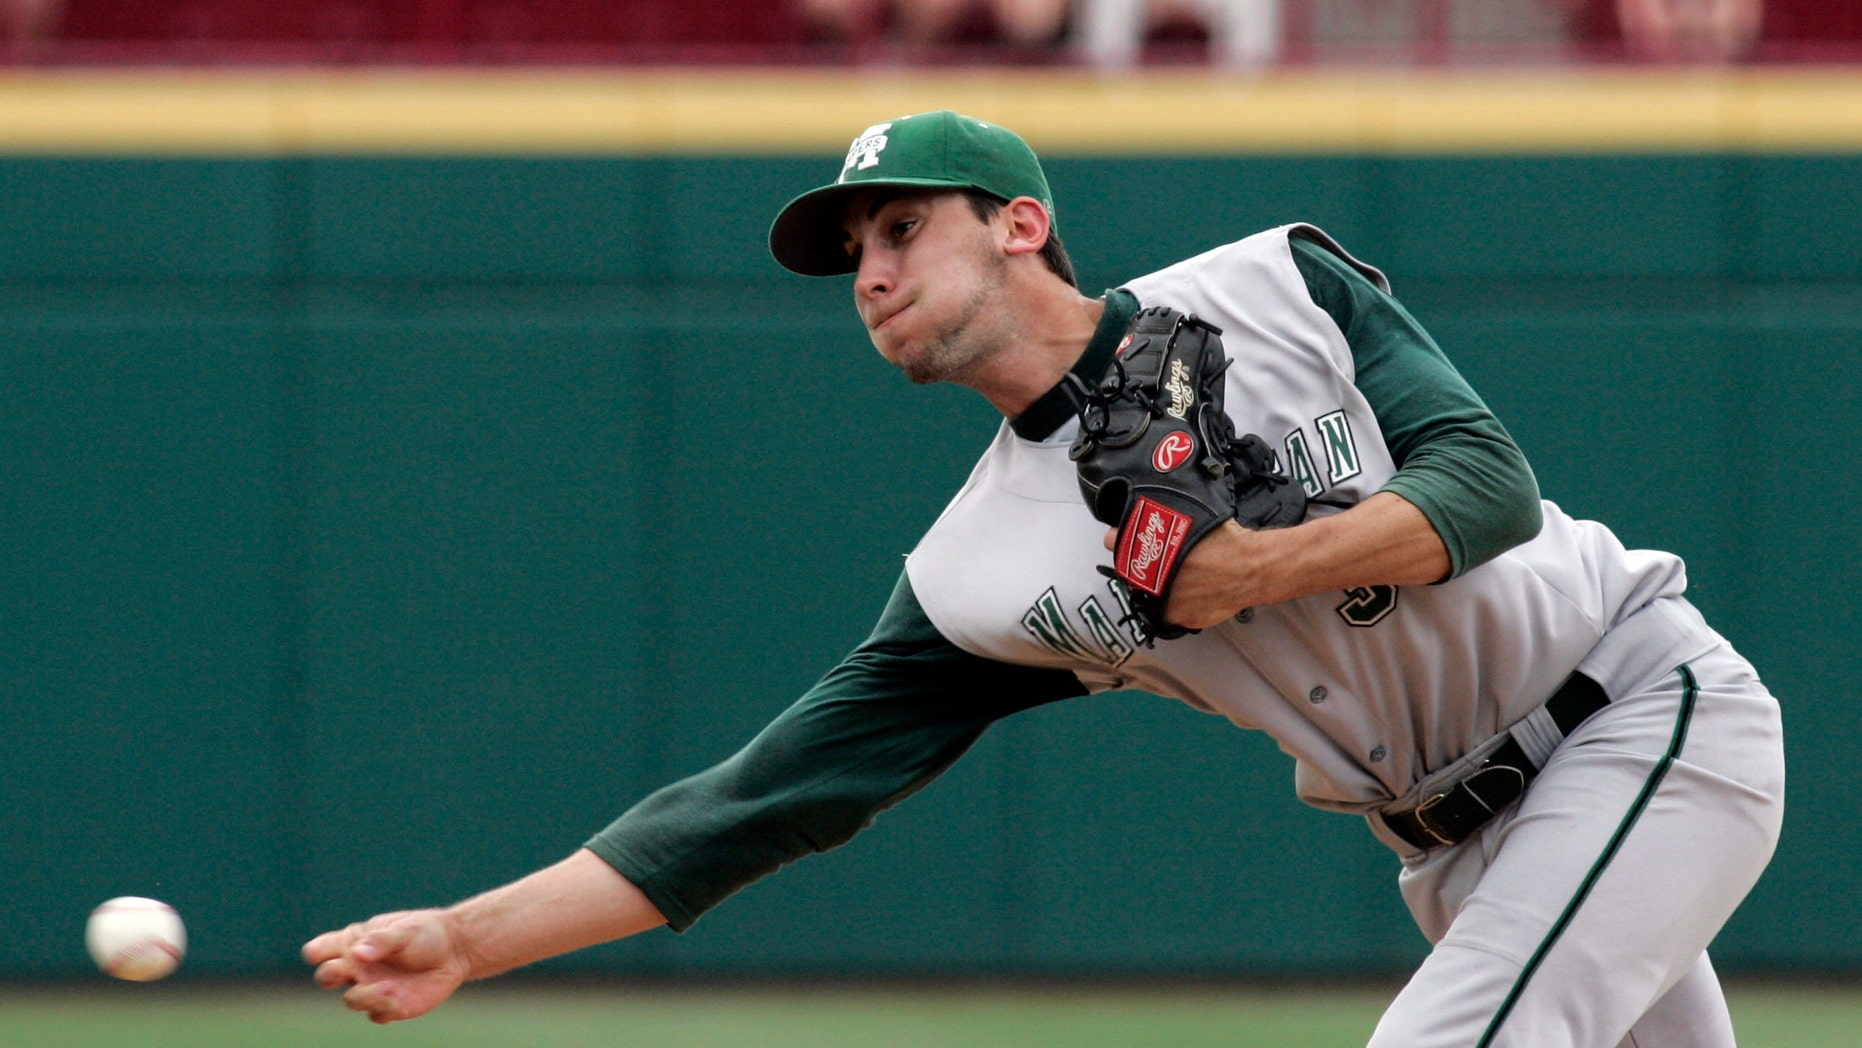 FILE - In this June 1, 2012, file photo, Manhattan's Taylor Sewitt delivers his pitch during an NCAA college baseball game against South Carolina in Columbia, S.C. Sewitt's deceptive submarine-style delivery helped him rack up 22 scoreless innings for Manhattan College in the MAAC tournament last May, winning three games in four days and tossing 296 pitches. (AP Photo/Mary Ann Chastain, File)